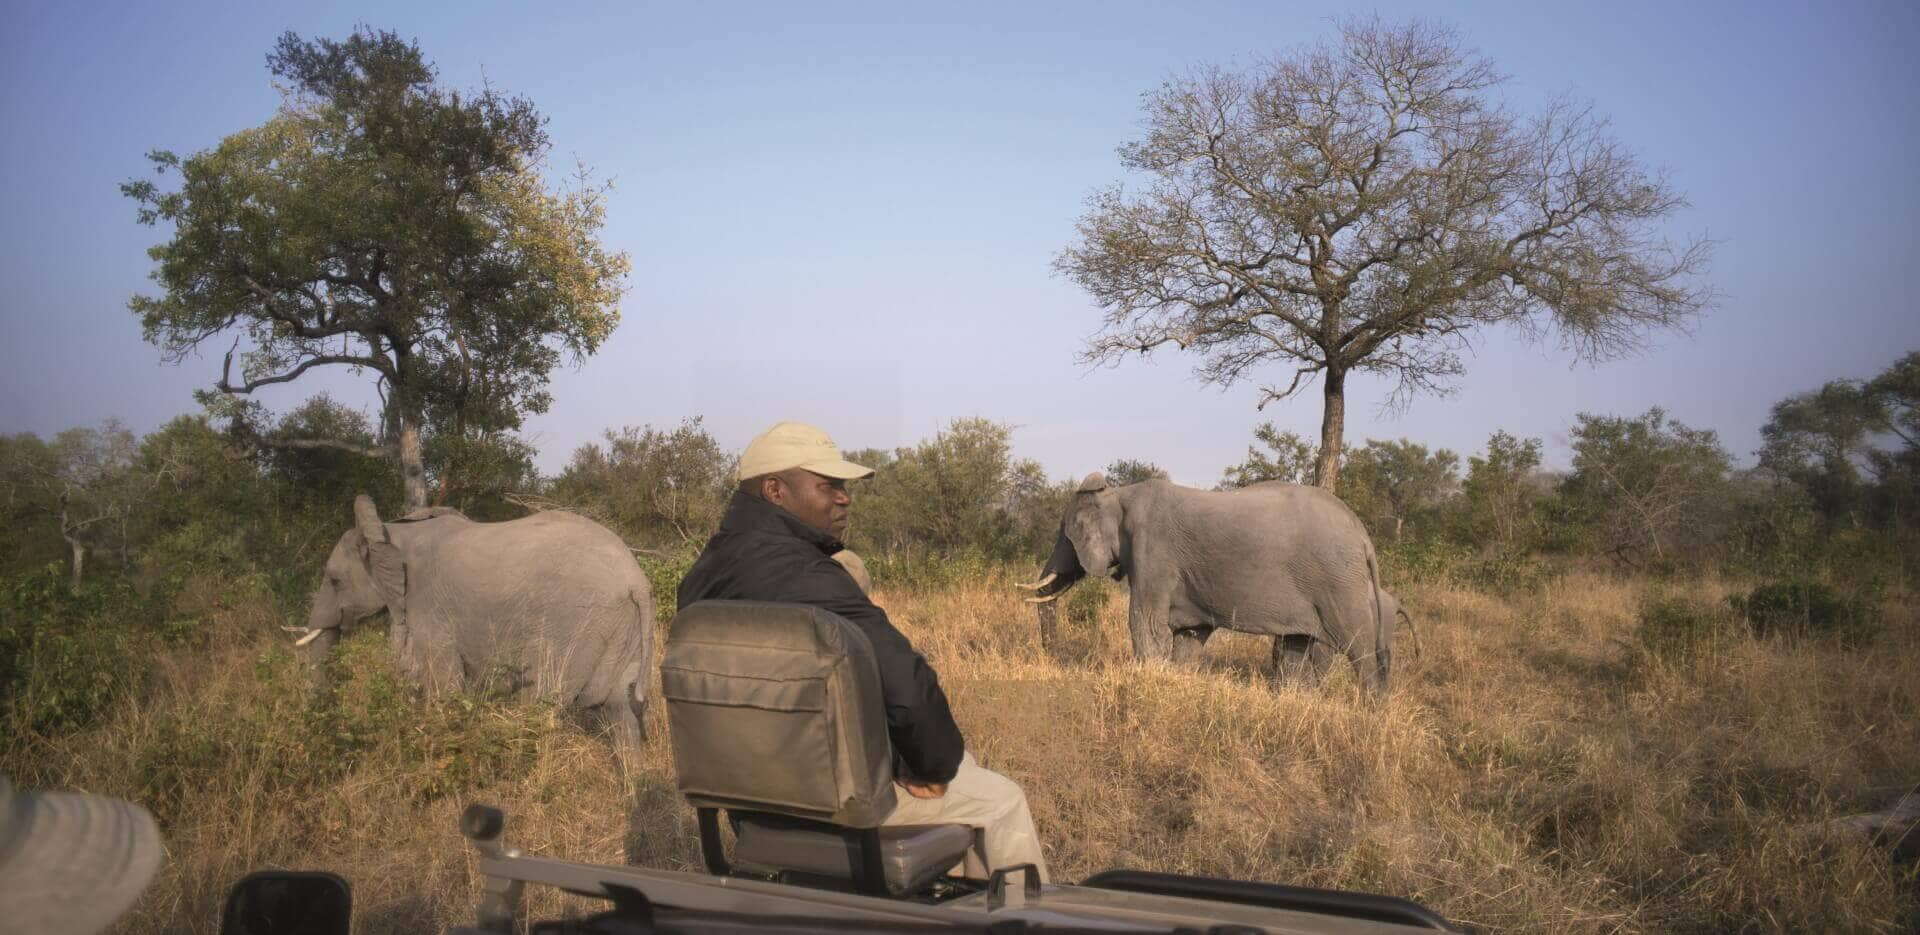 Kruger National Park & Private Game Reserves South Africa